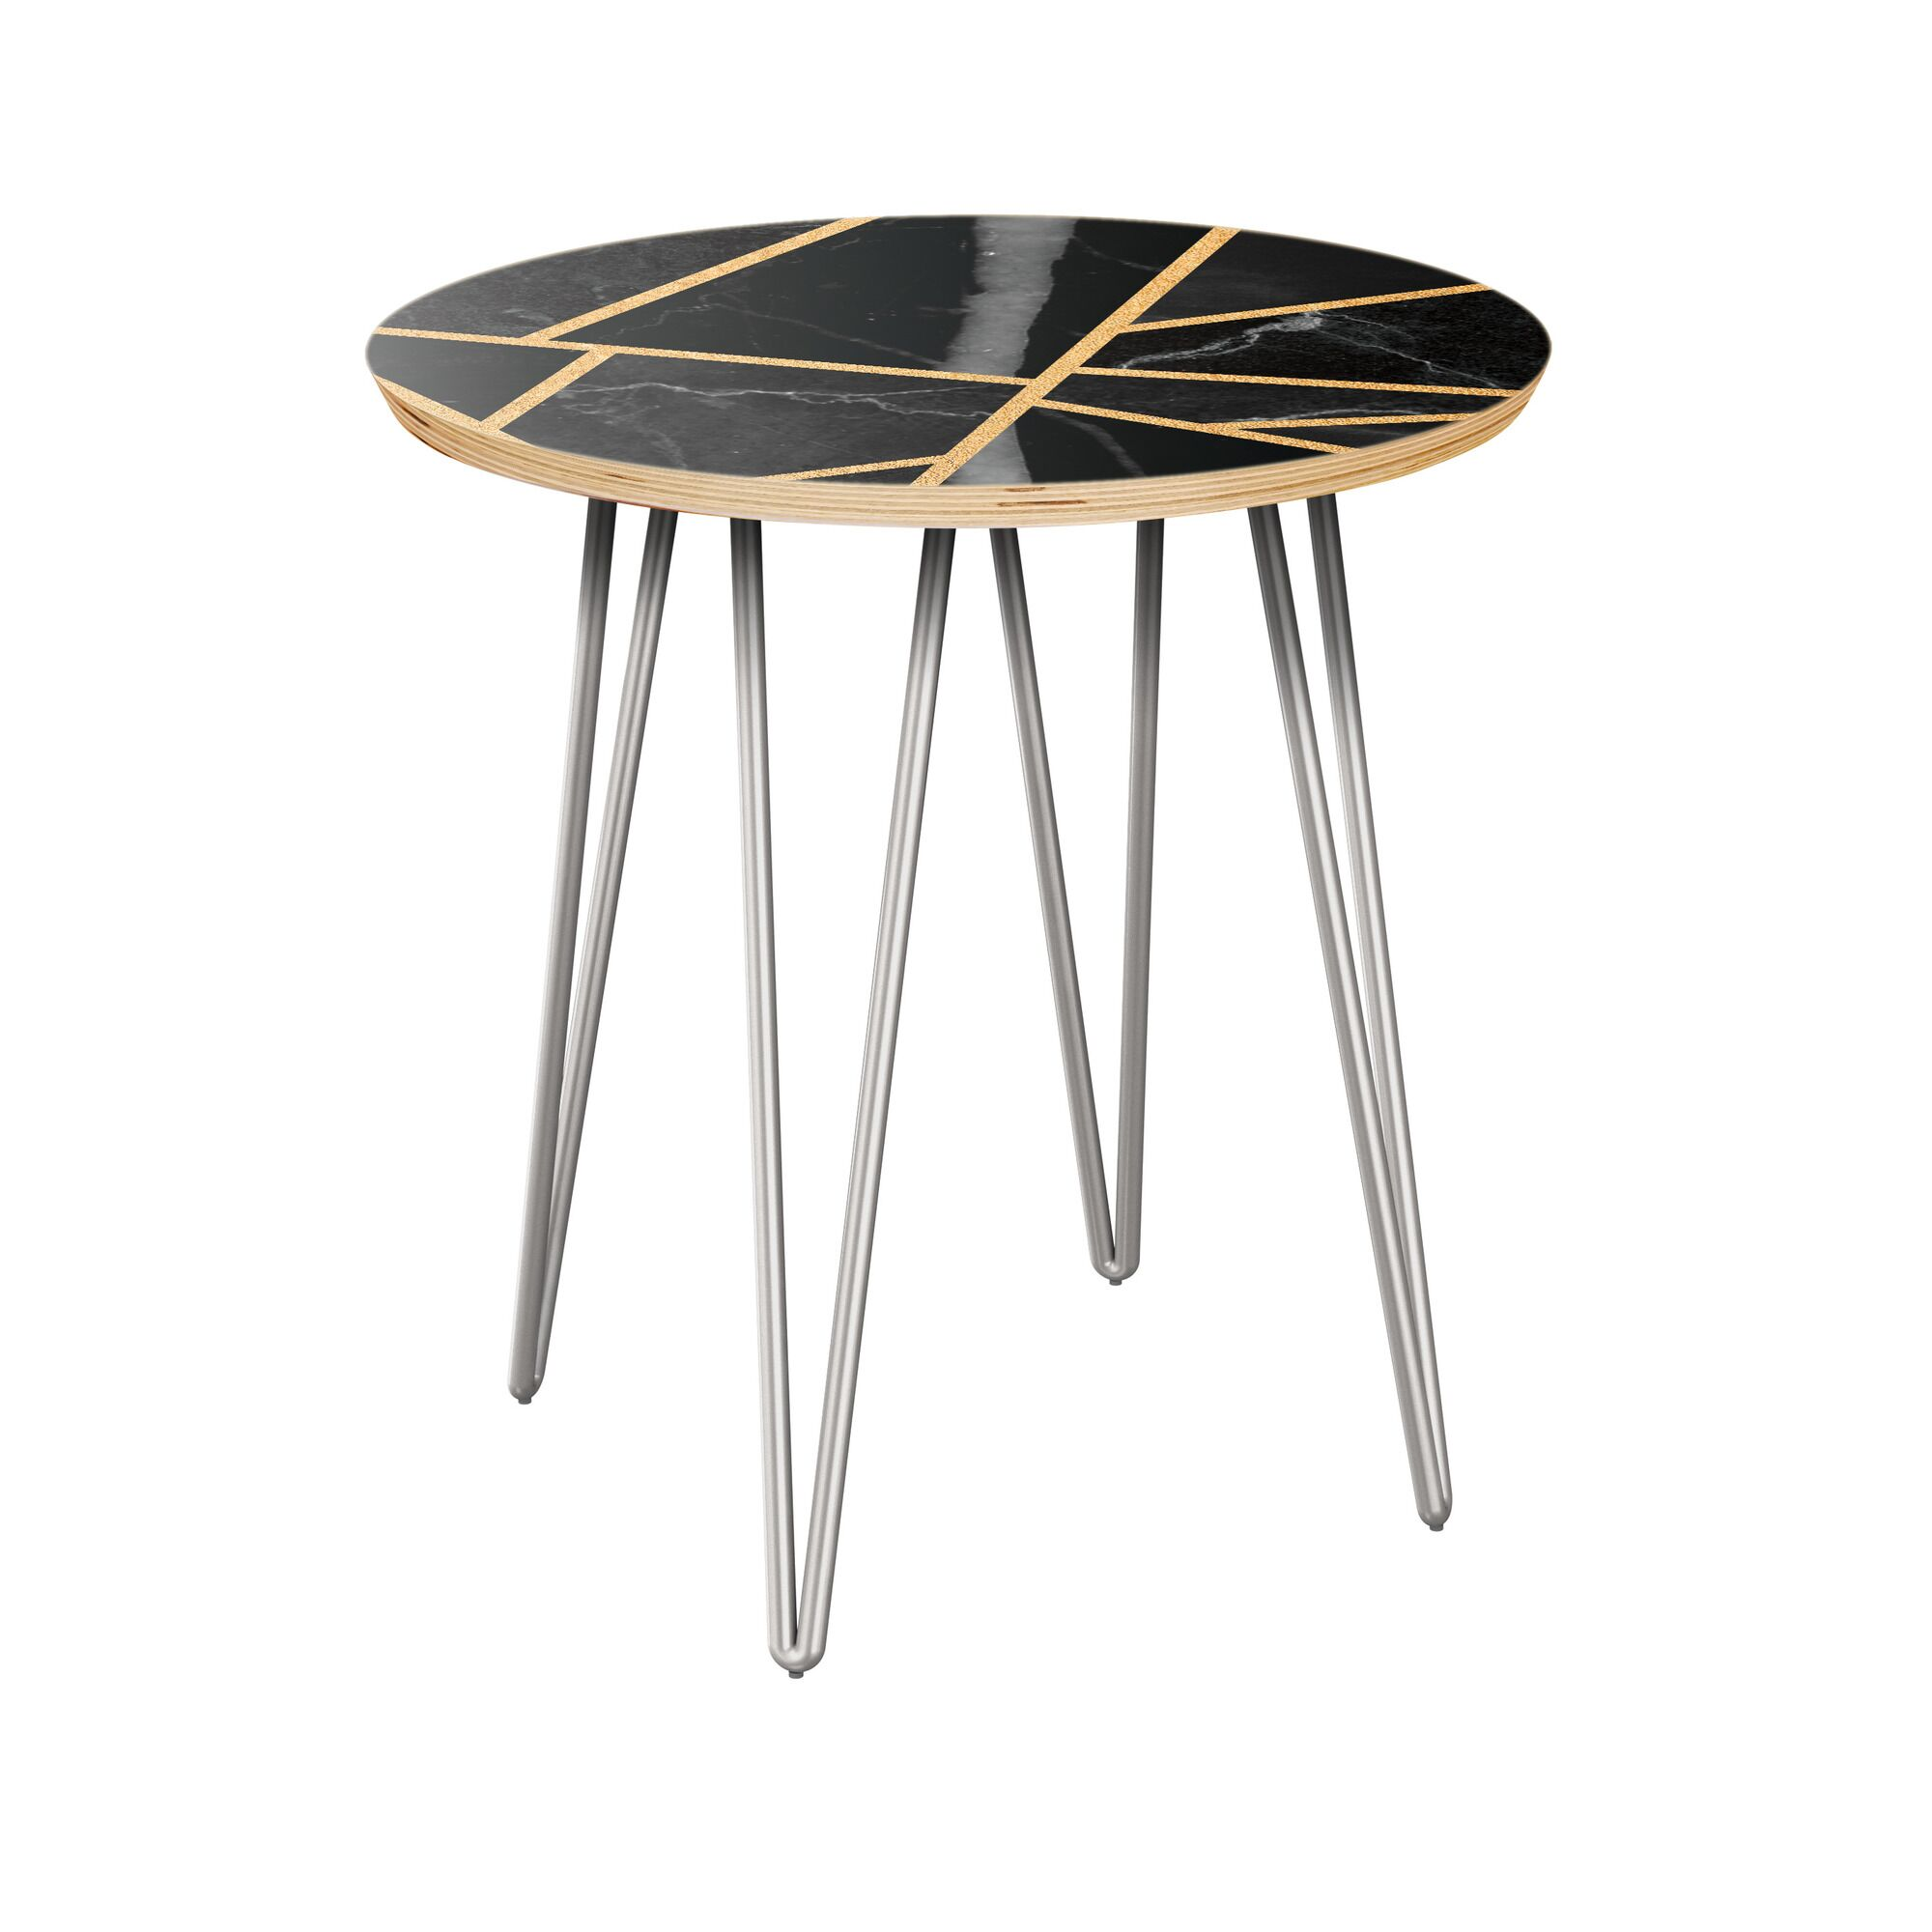 Rowe End Table Table Base Color: Chrome, Table Top Color: Natural/Black